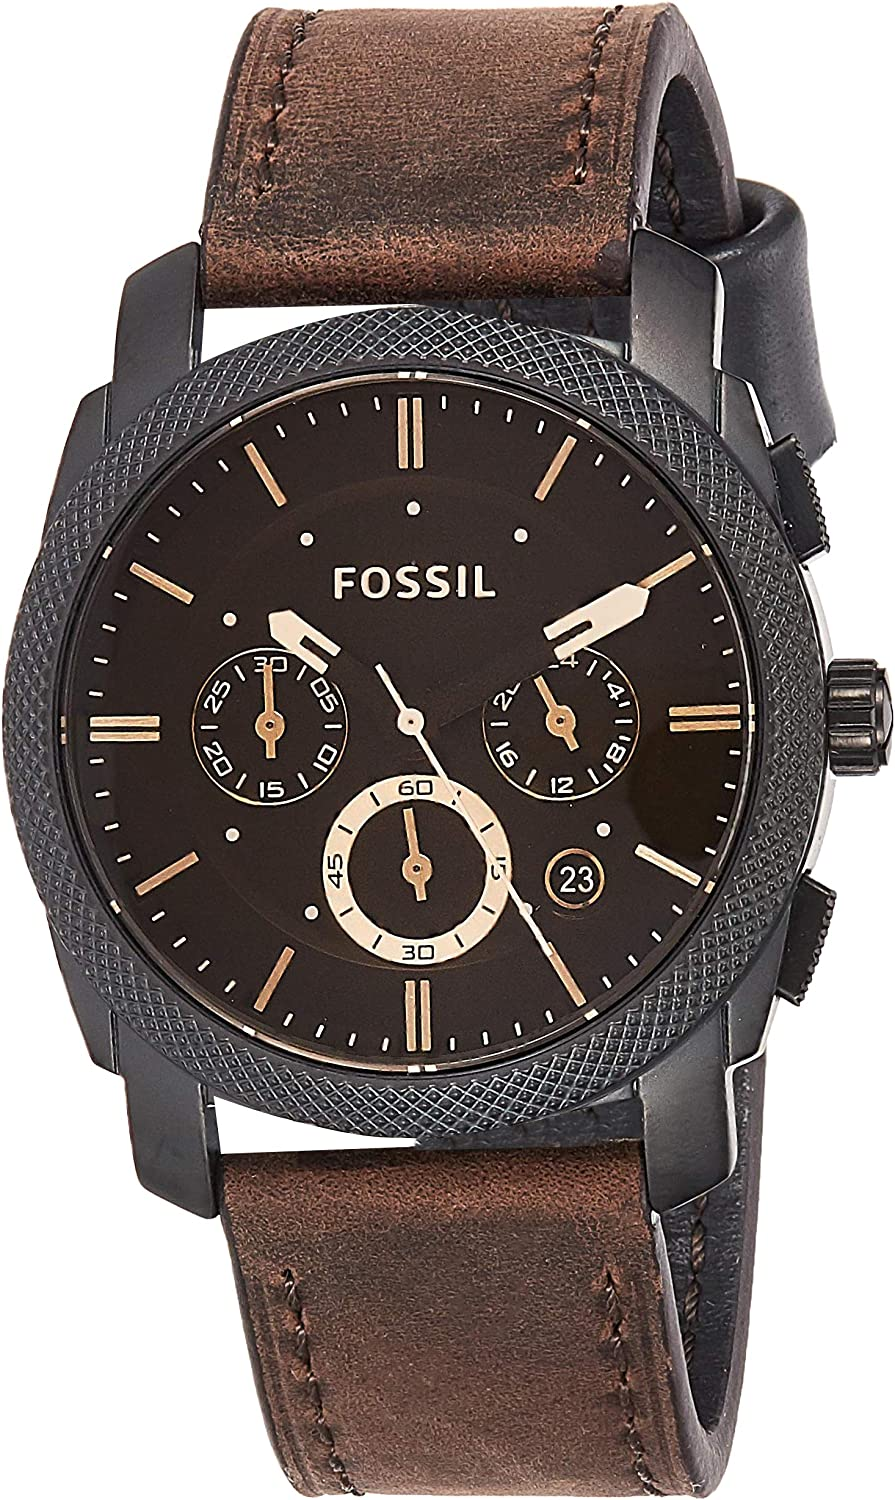 Fossil Men s FS4656 Analog Watch with Brown Band